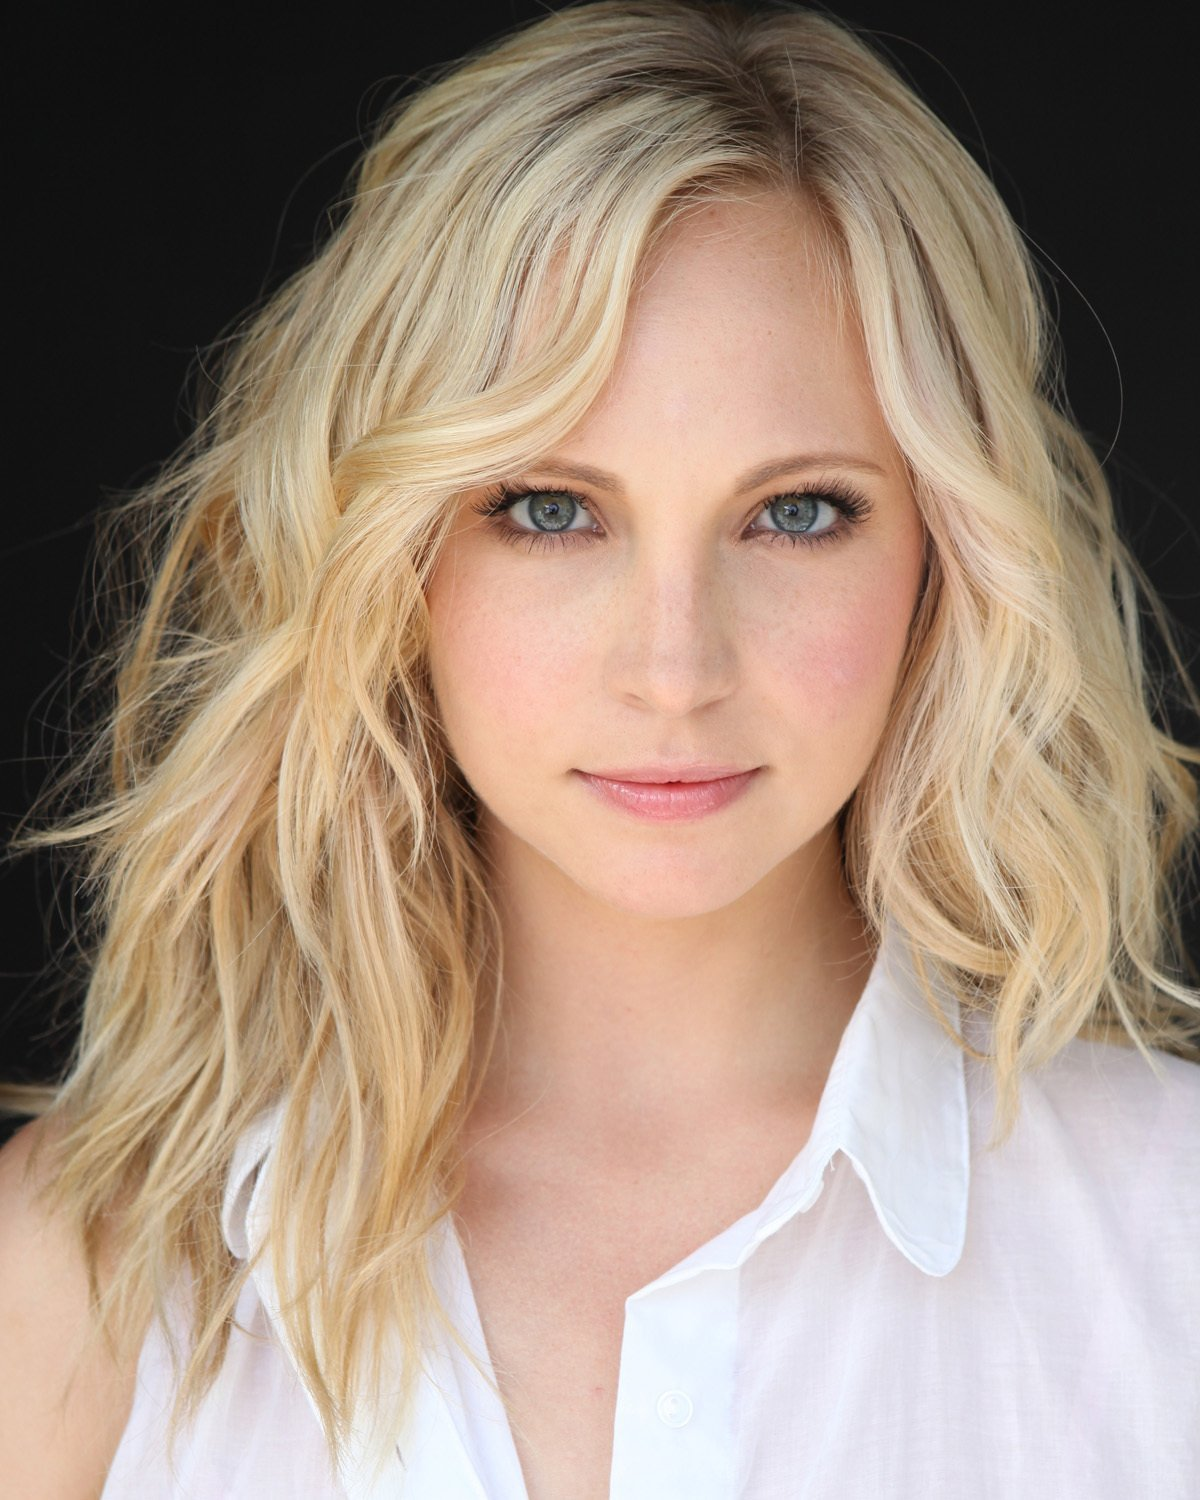 Download this Candice Accola Vandire Diaries picture